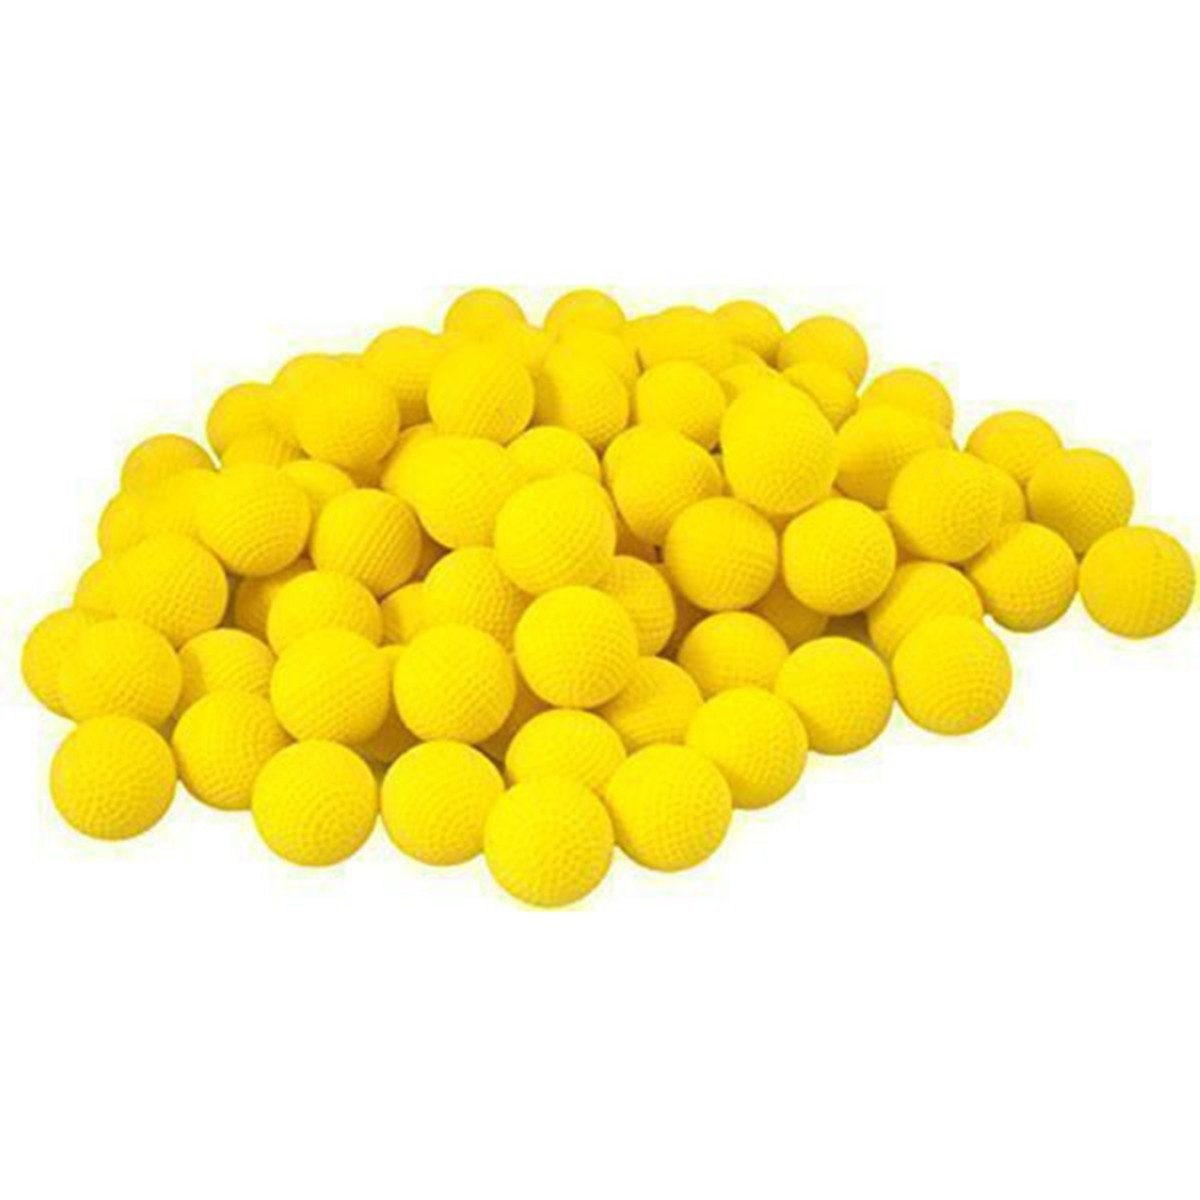 TOYMYTOY Darts Refill for Nerf Rival Zeus MXV-1200 Apollo XV-700 Blaster (Yellow) - 25 Pieces